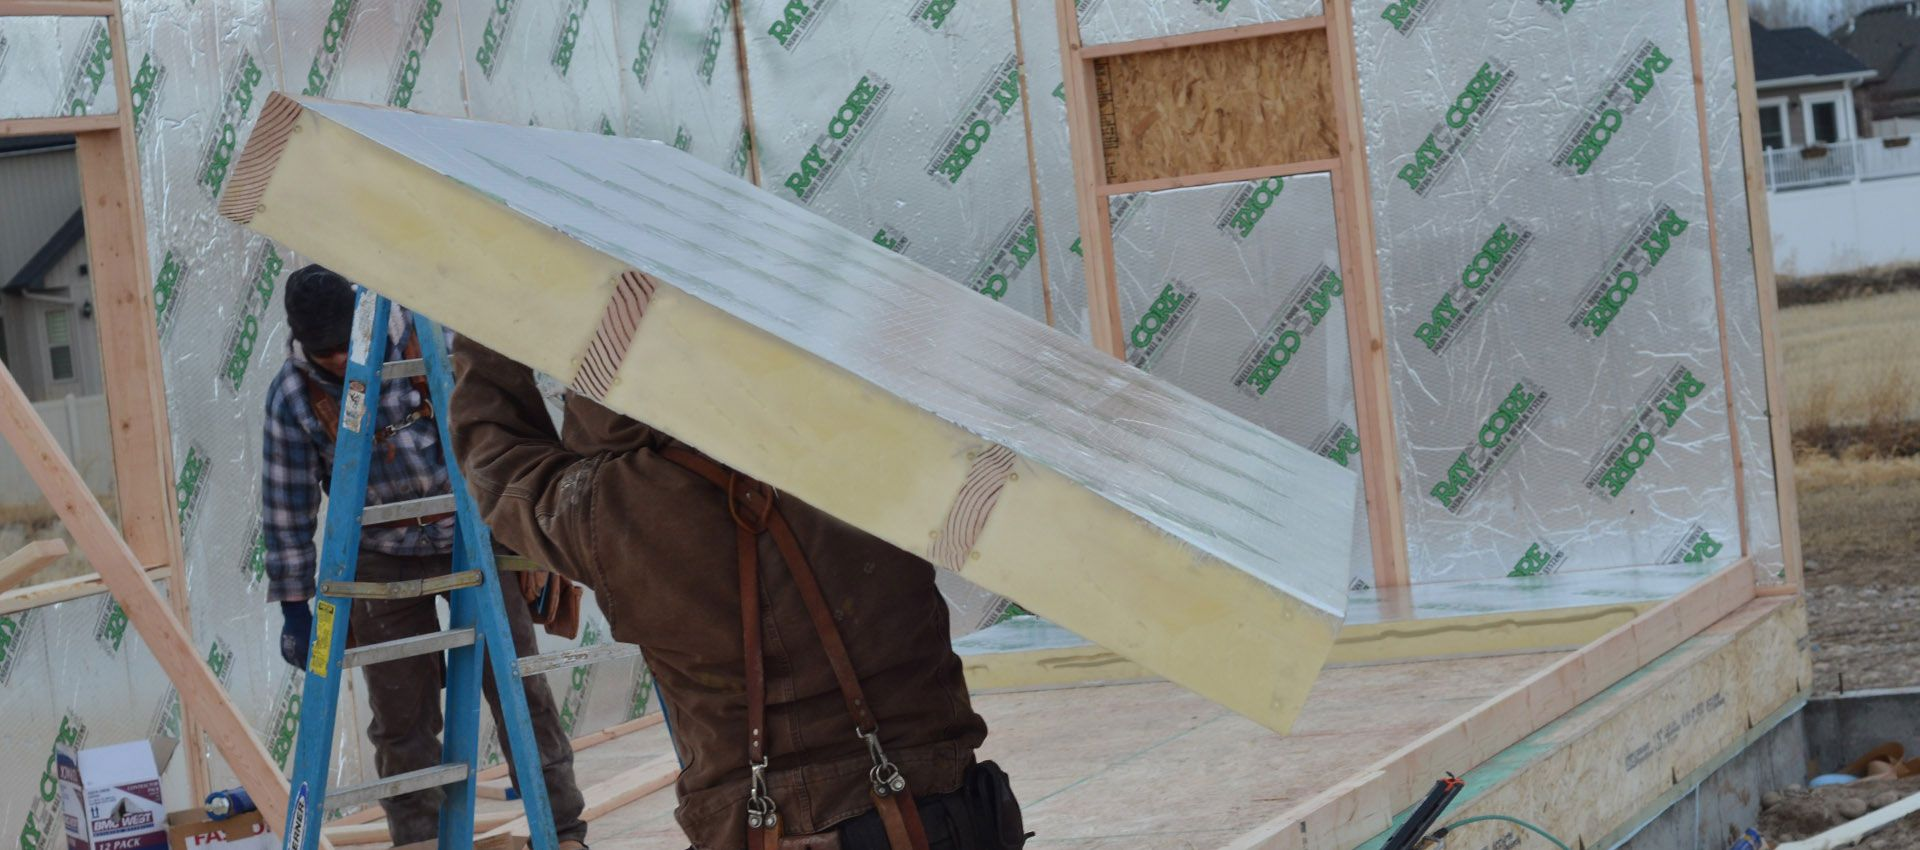 Structural Insulated Panels Sips Save Heating Cooling Costs A Better Way To Build An Super I Structural Insulated Panels Insulated Panels Home Insulation